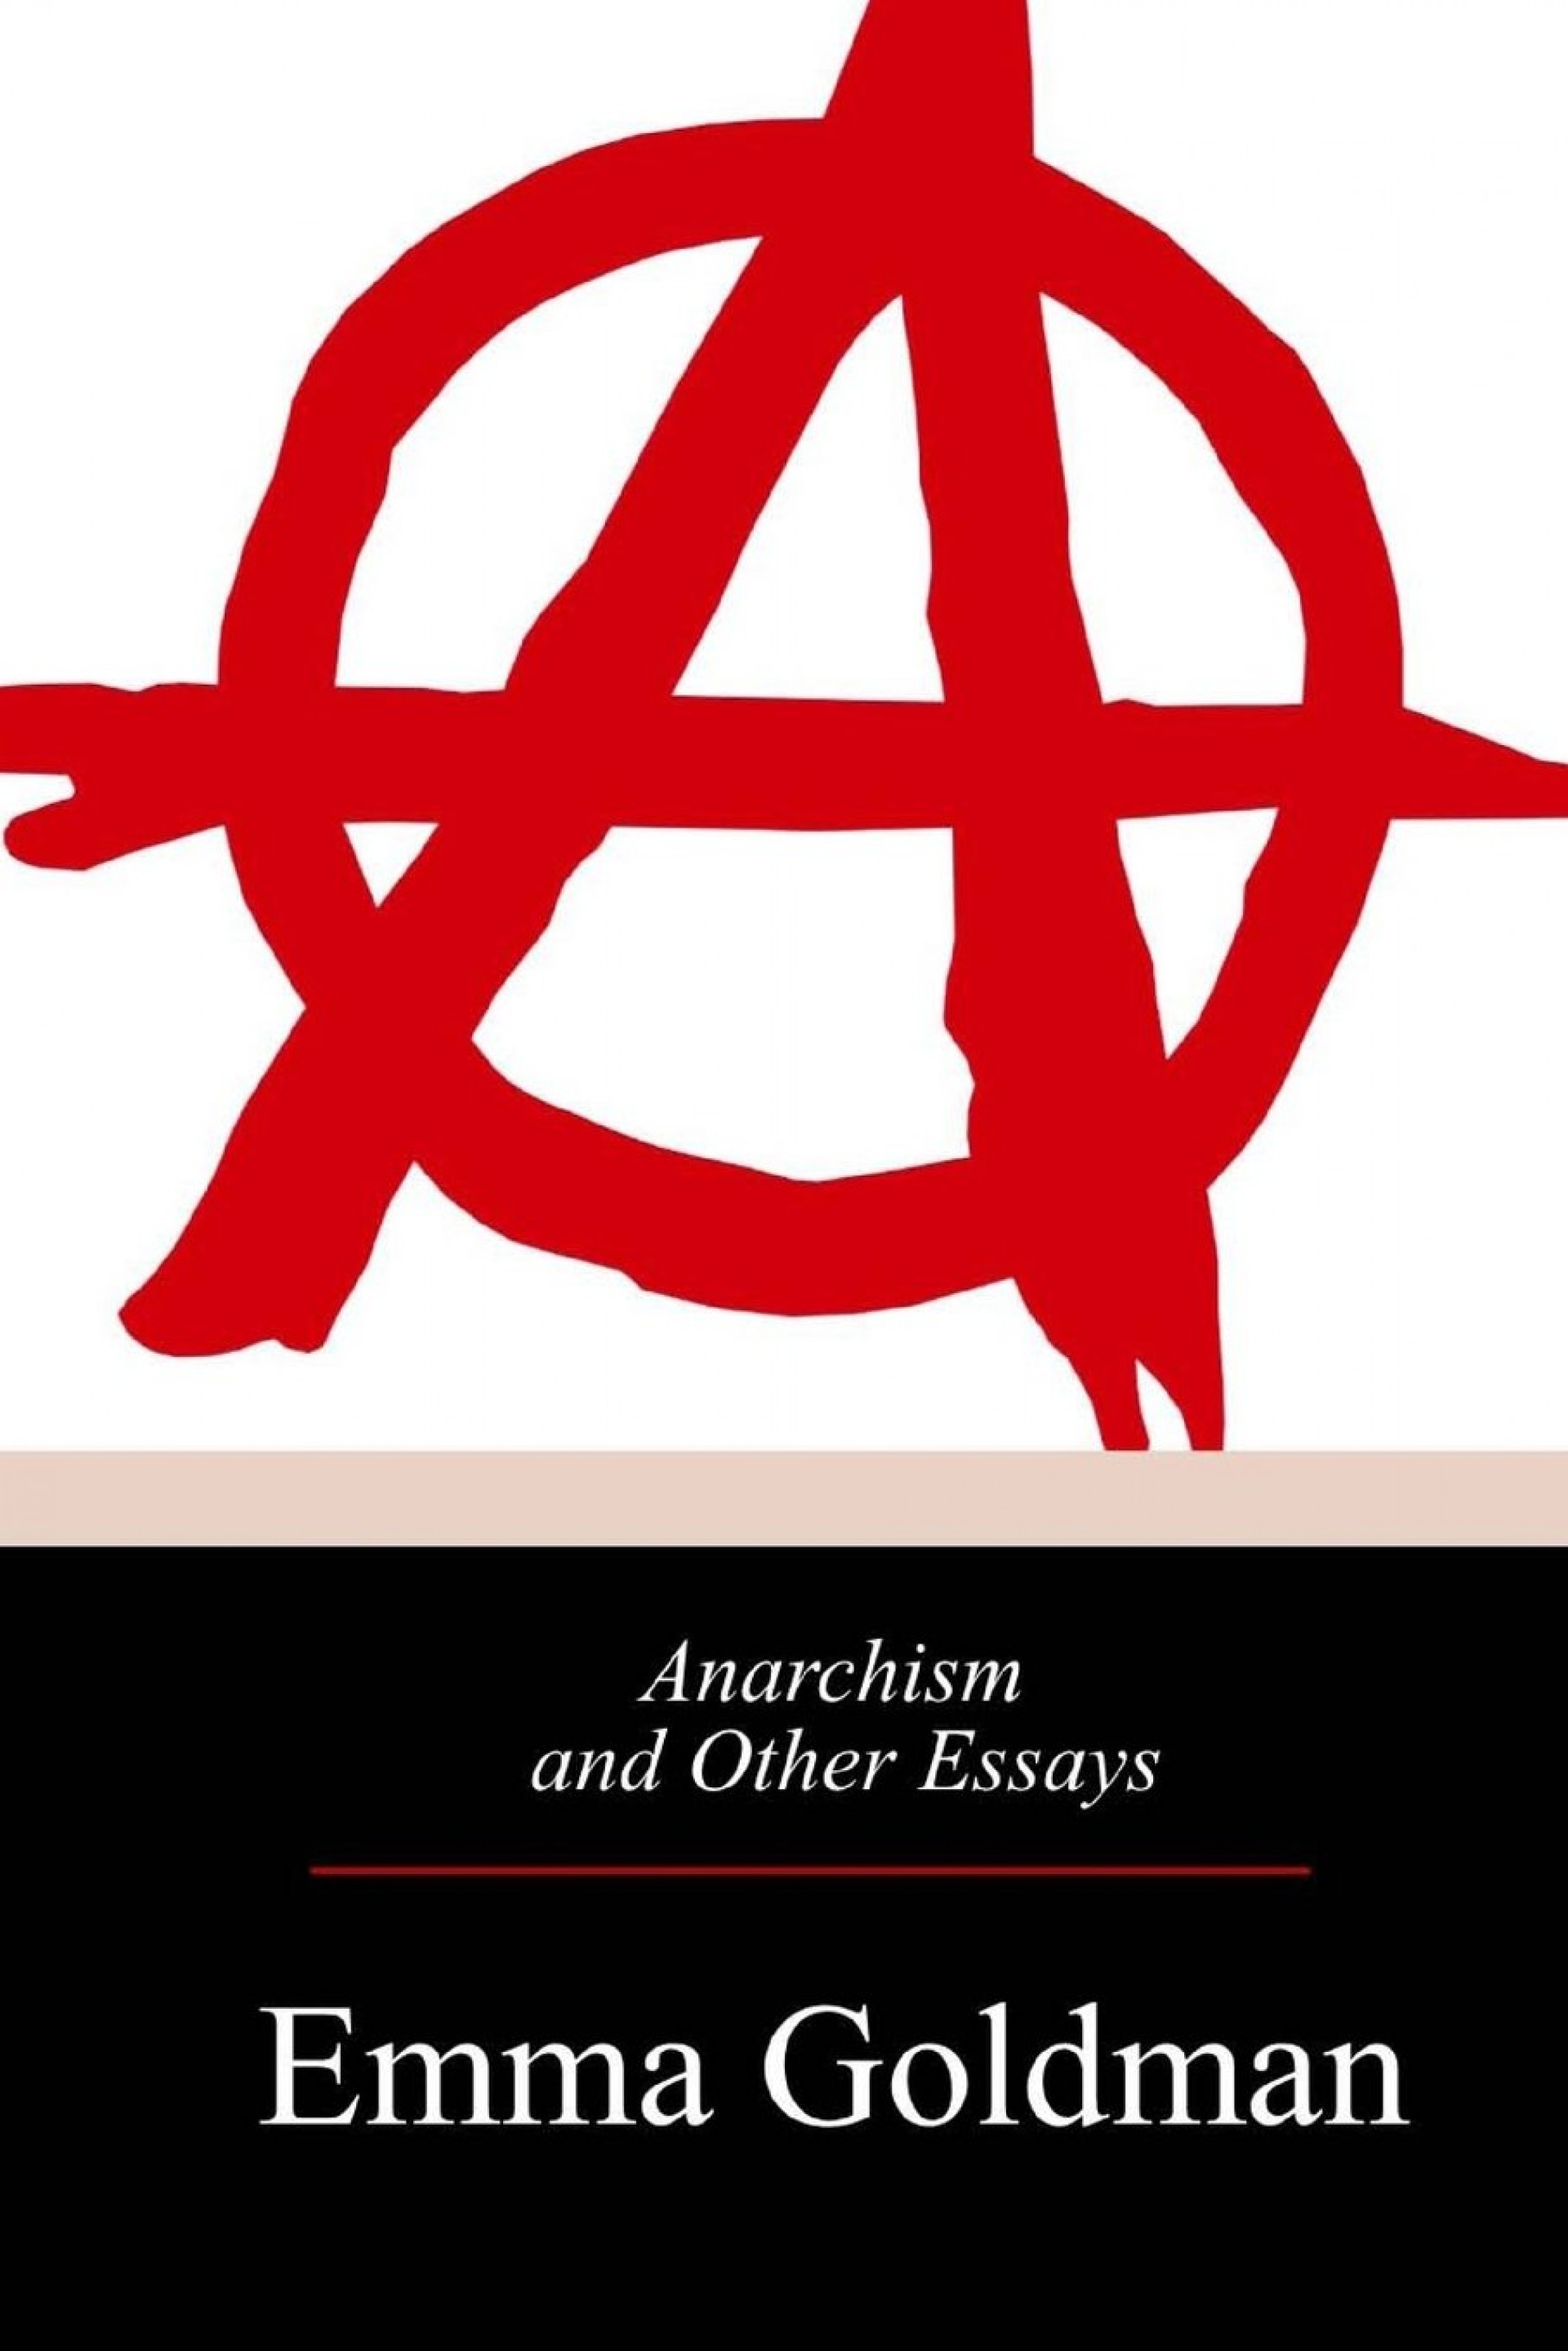 008 610zkhxxiil Essay Example Anarchism And Other Incredible Essays Emma Goldman Summary Pdf 1920